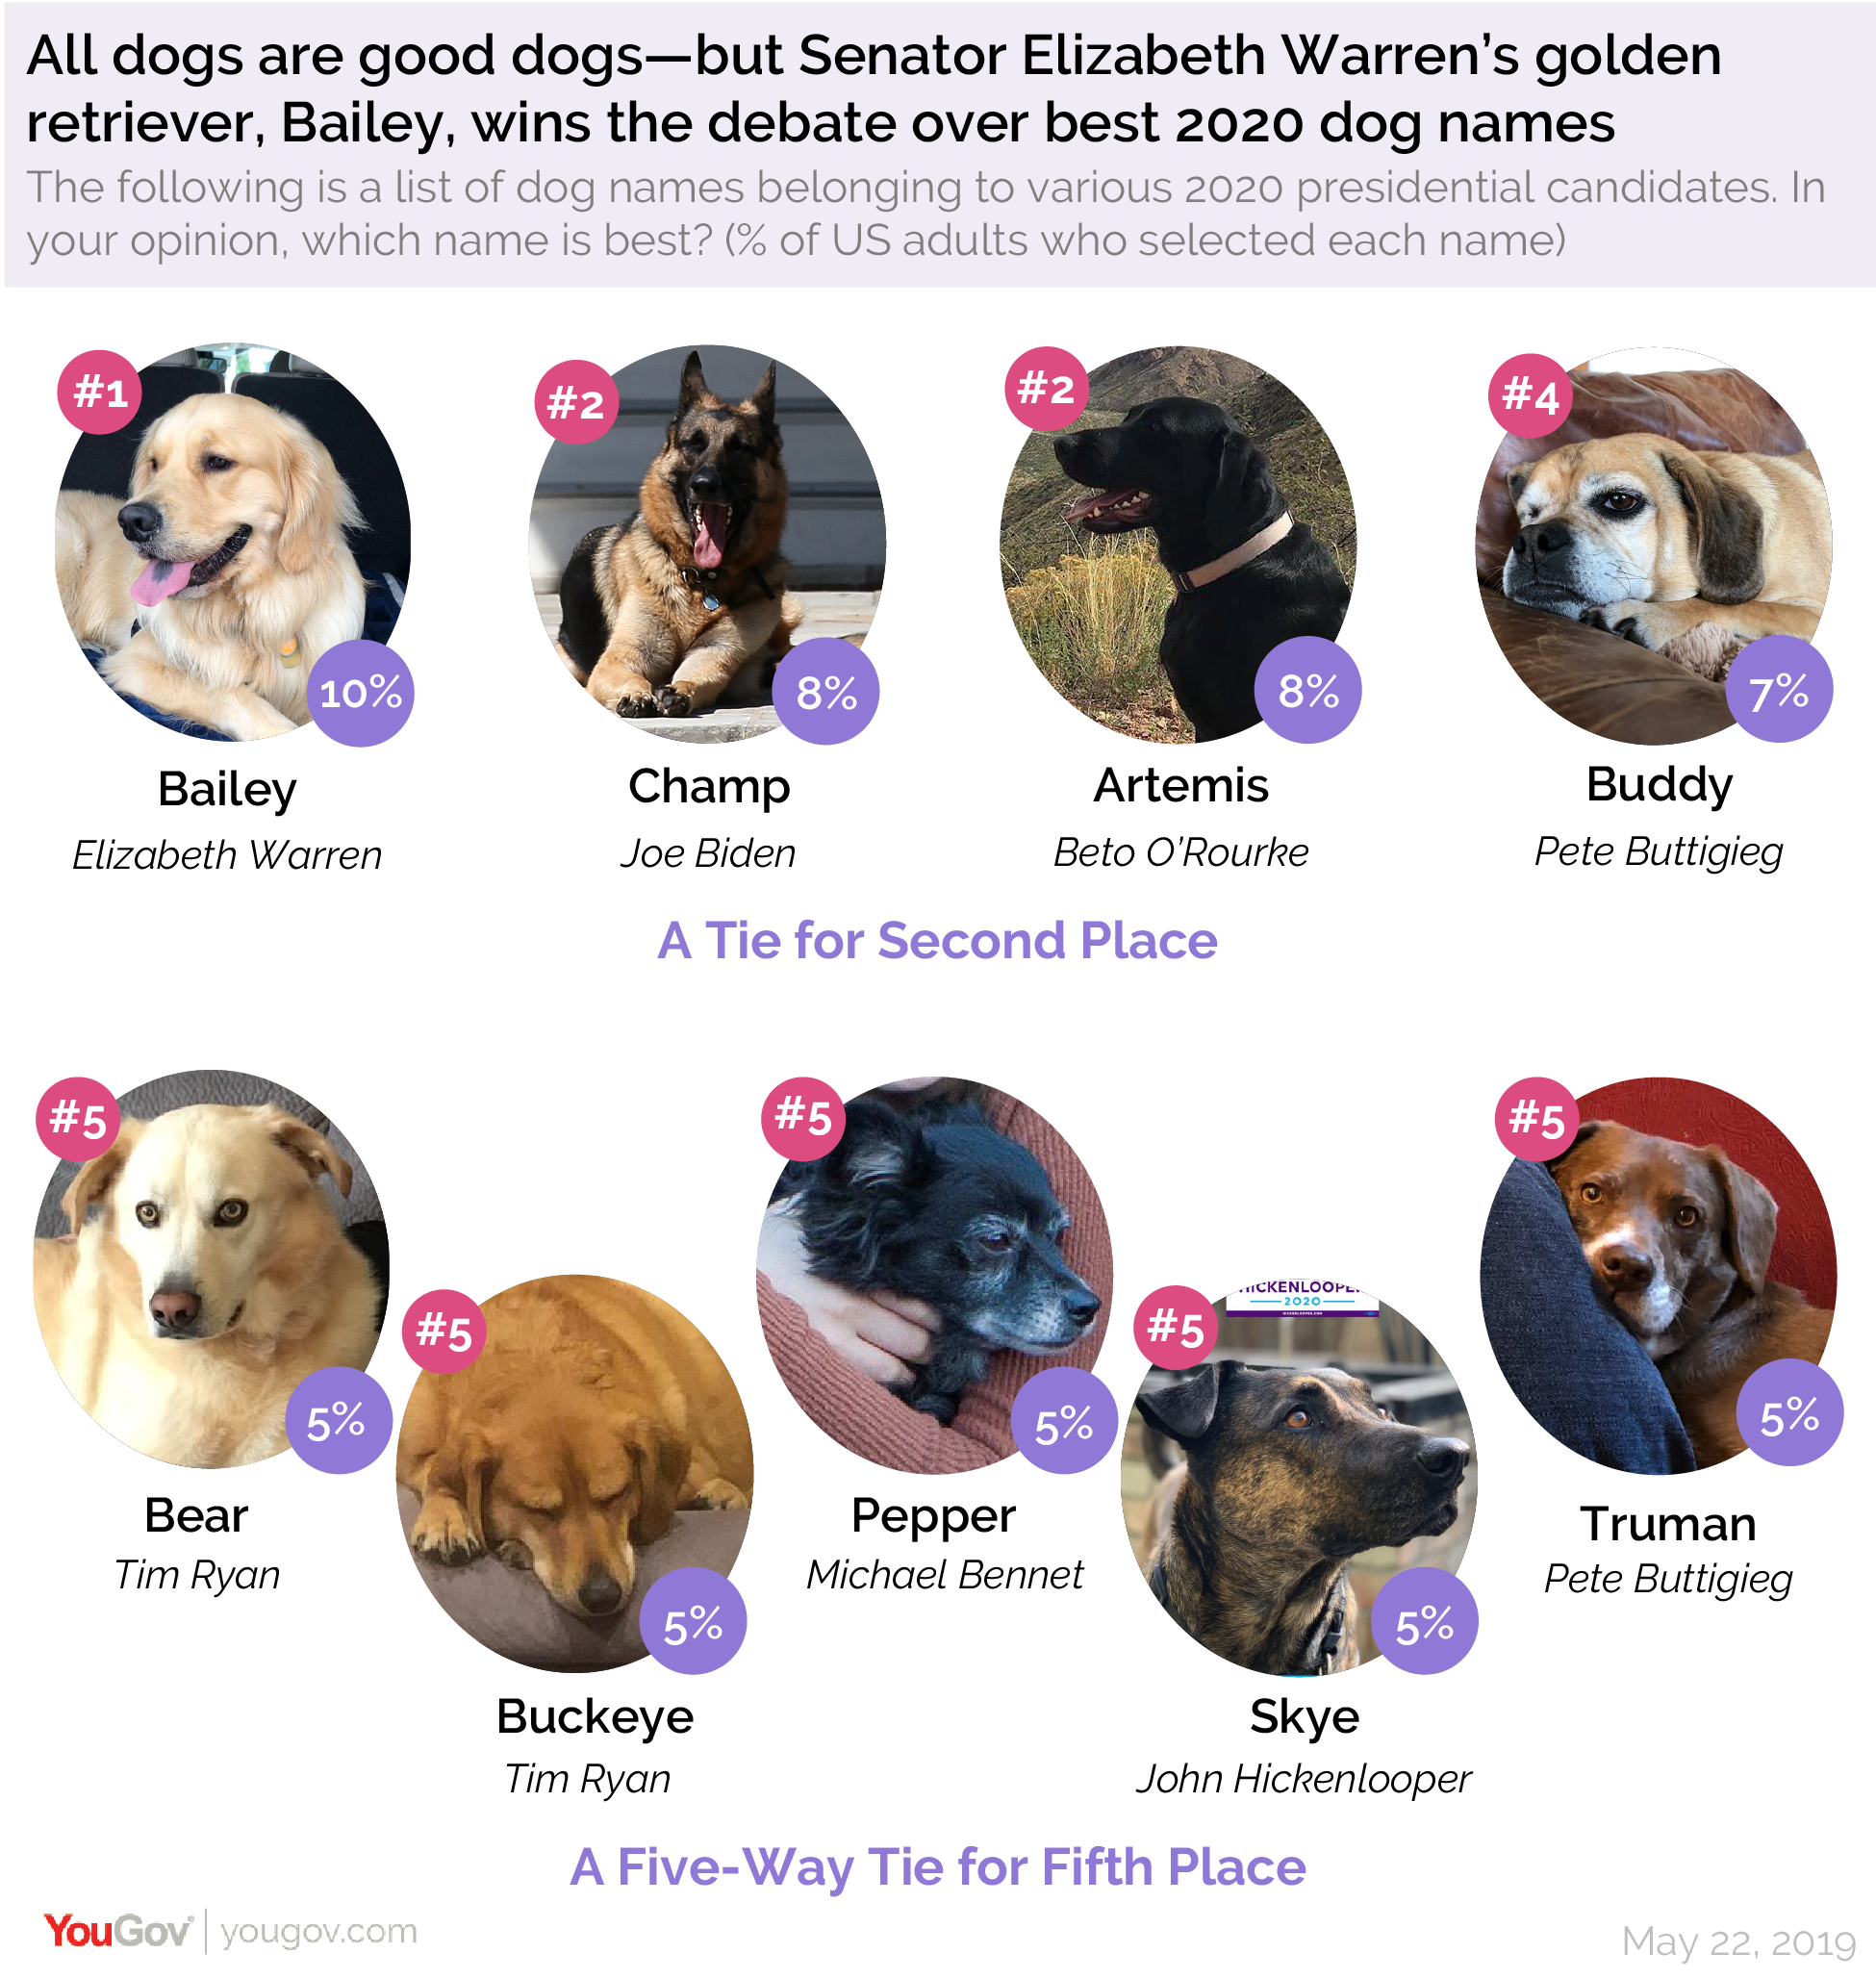 All dogs are good dogs, but Senator Elizabeth Warren's golden retriever, Bailey, wins the debate over best 2020 dog names